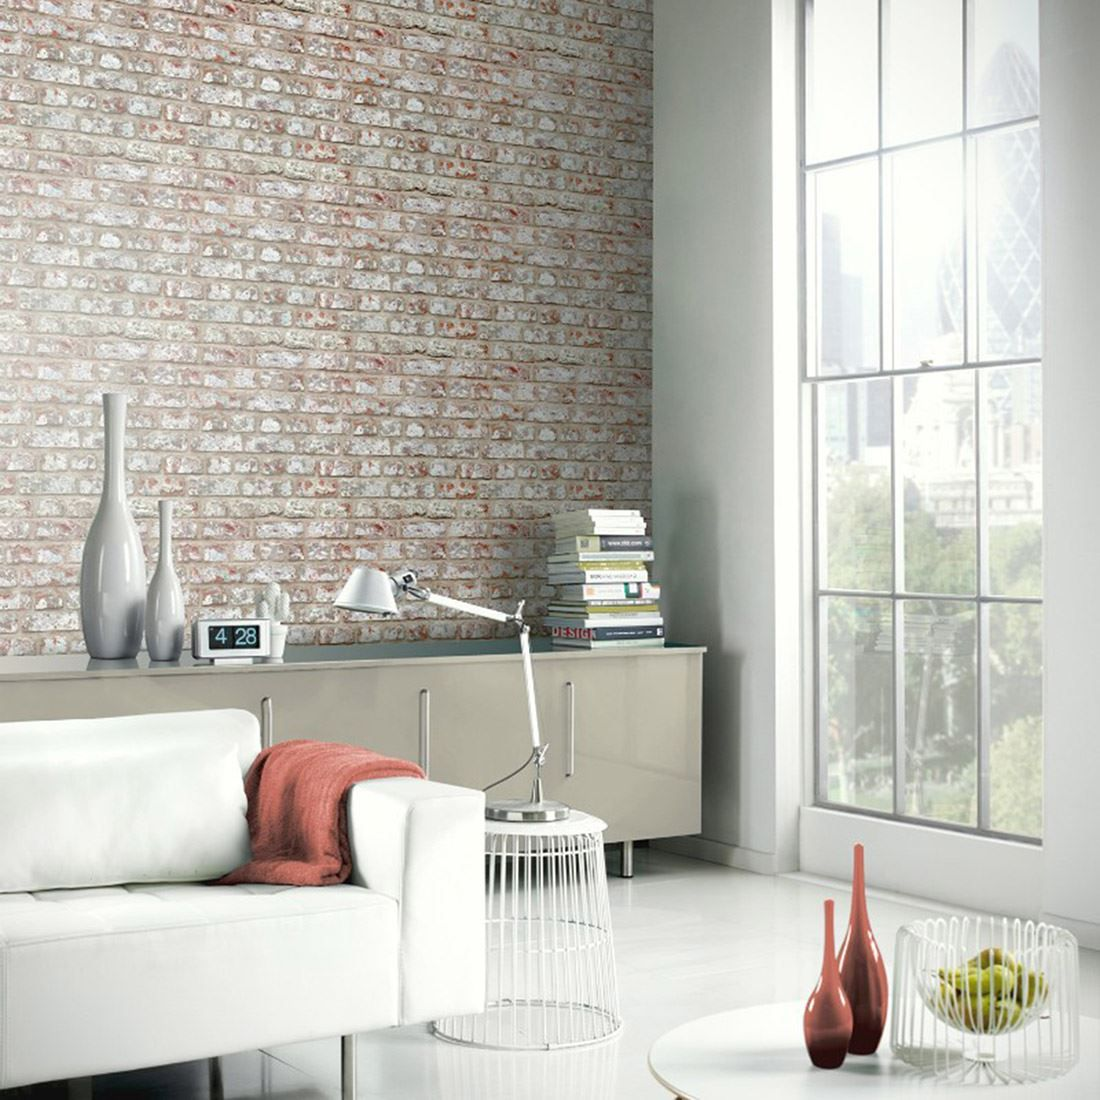 Details about ARTHOUSE RUSTIC STONE EFFECT WALLPAPER